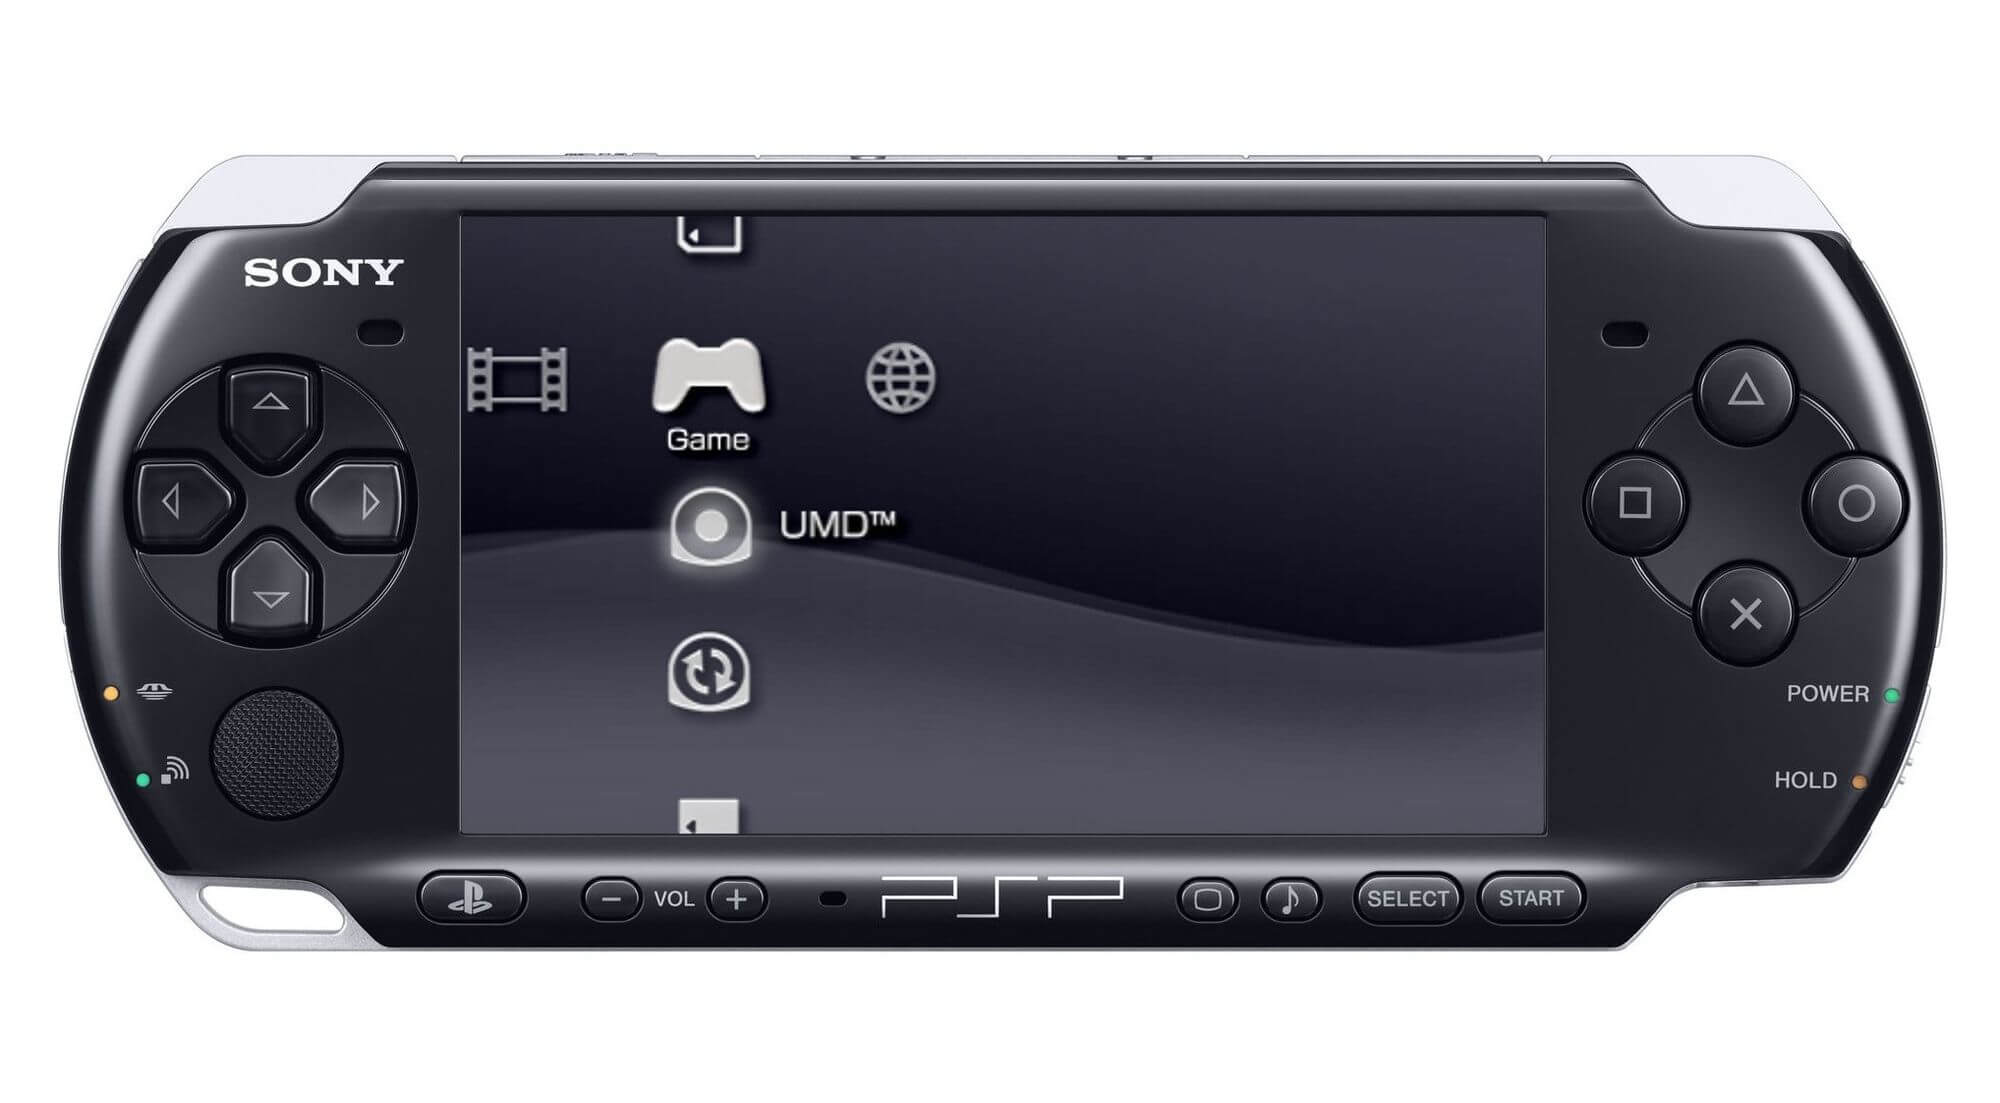 Sony PlayStation Portable PSP-1000